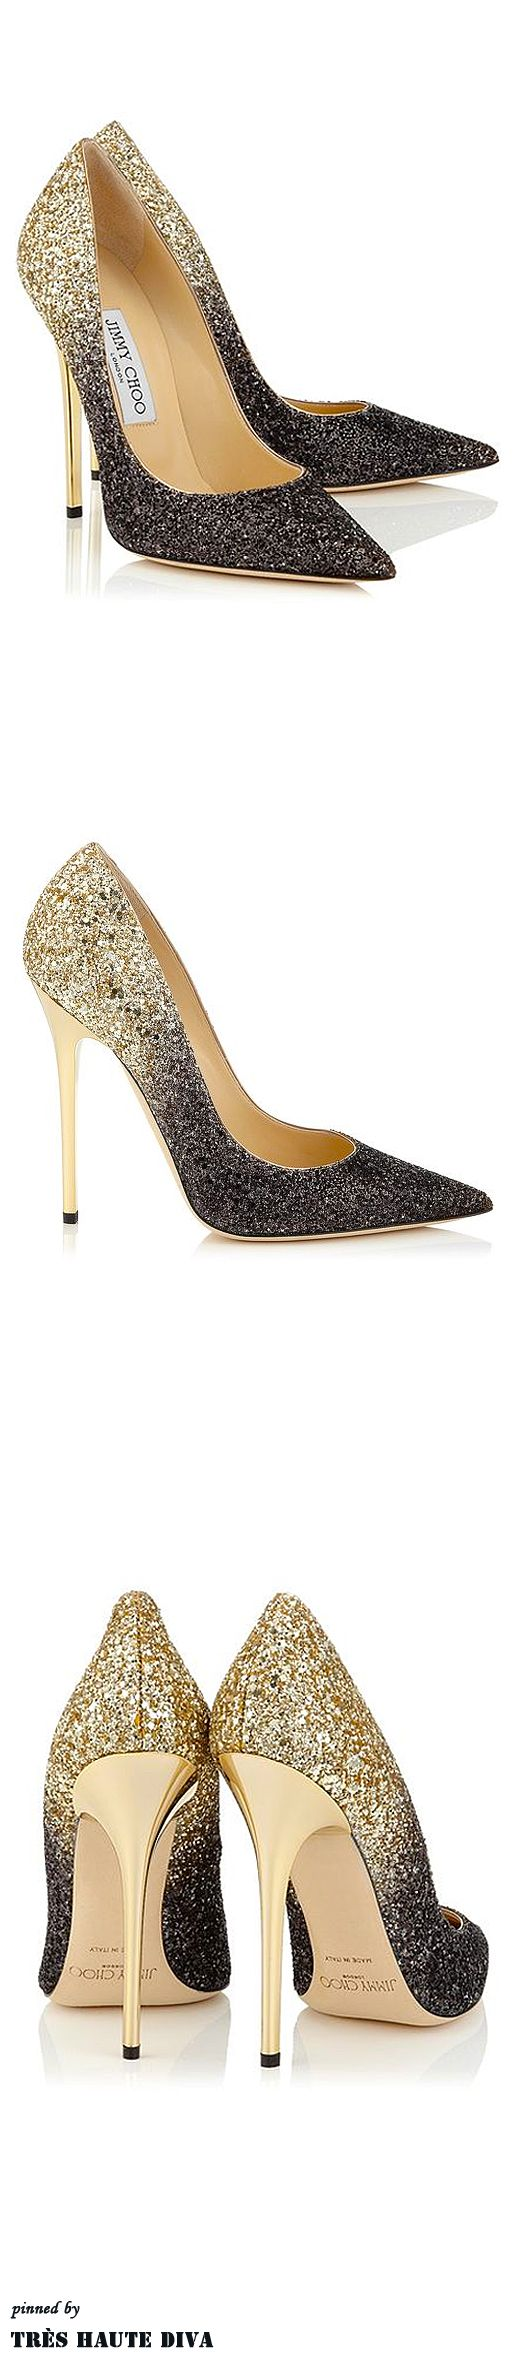 Jimmy Choo 'Anouk' - Black and Nude Coarse Degrade Glitter Pointy Toe Pumps https://www.pinterest.com/lahana/shoes-zapatos-chaussures-schuhe-%E9%9E%8B-schoenen-o%D0%B1%D1%83%D0%B2%D1%8C-%E0%A4%9C/